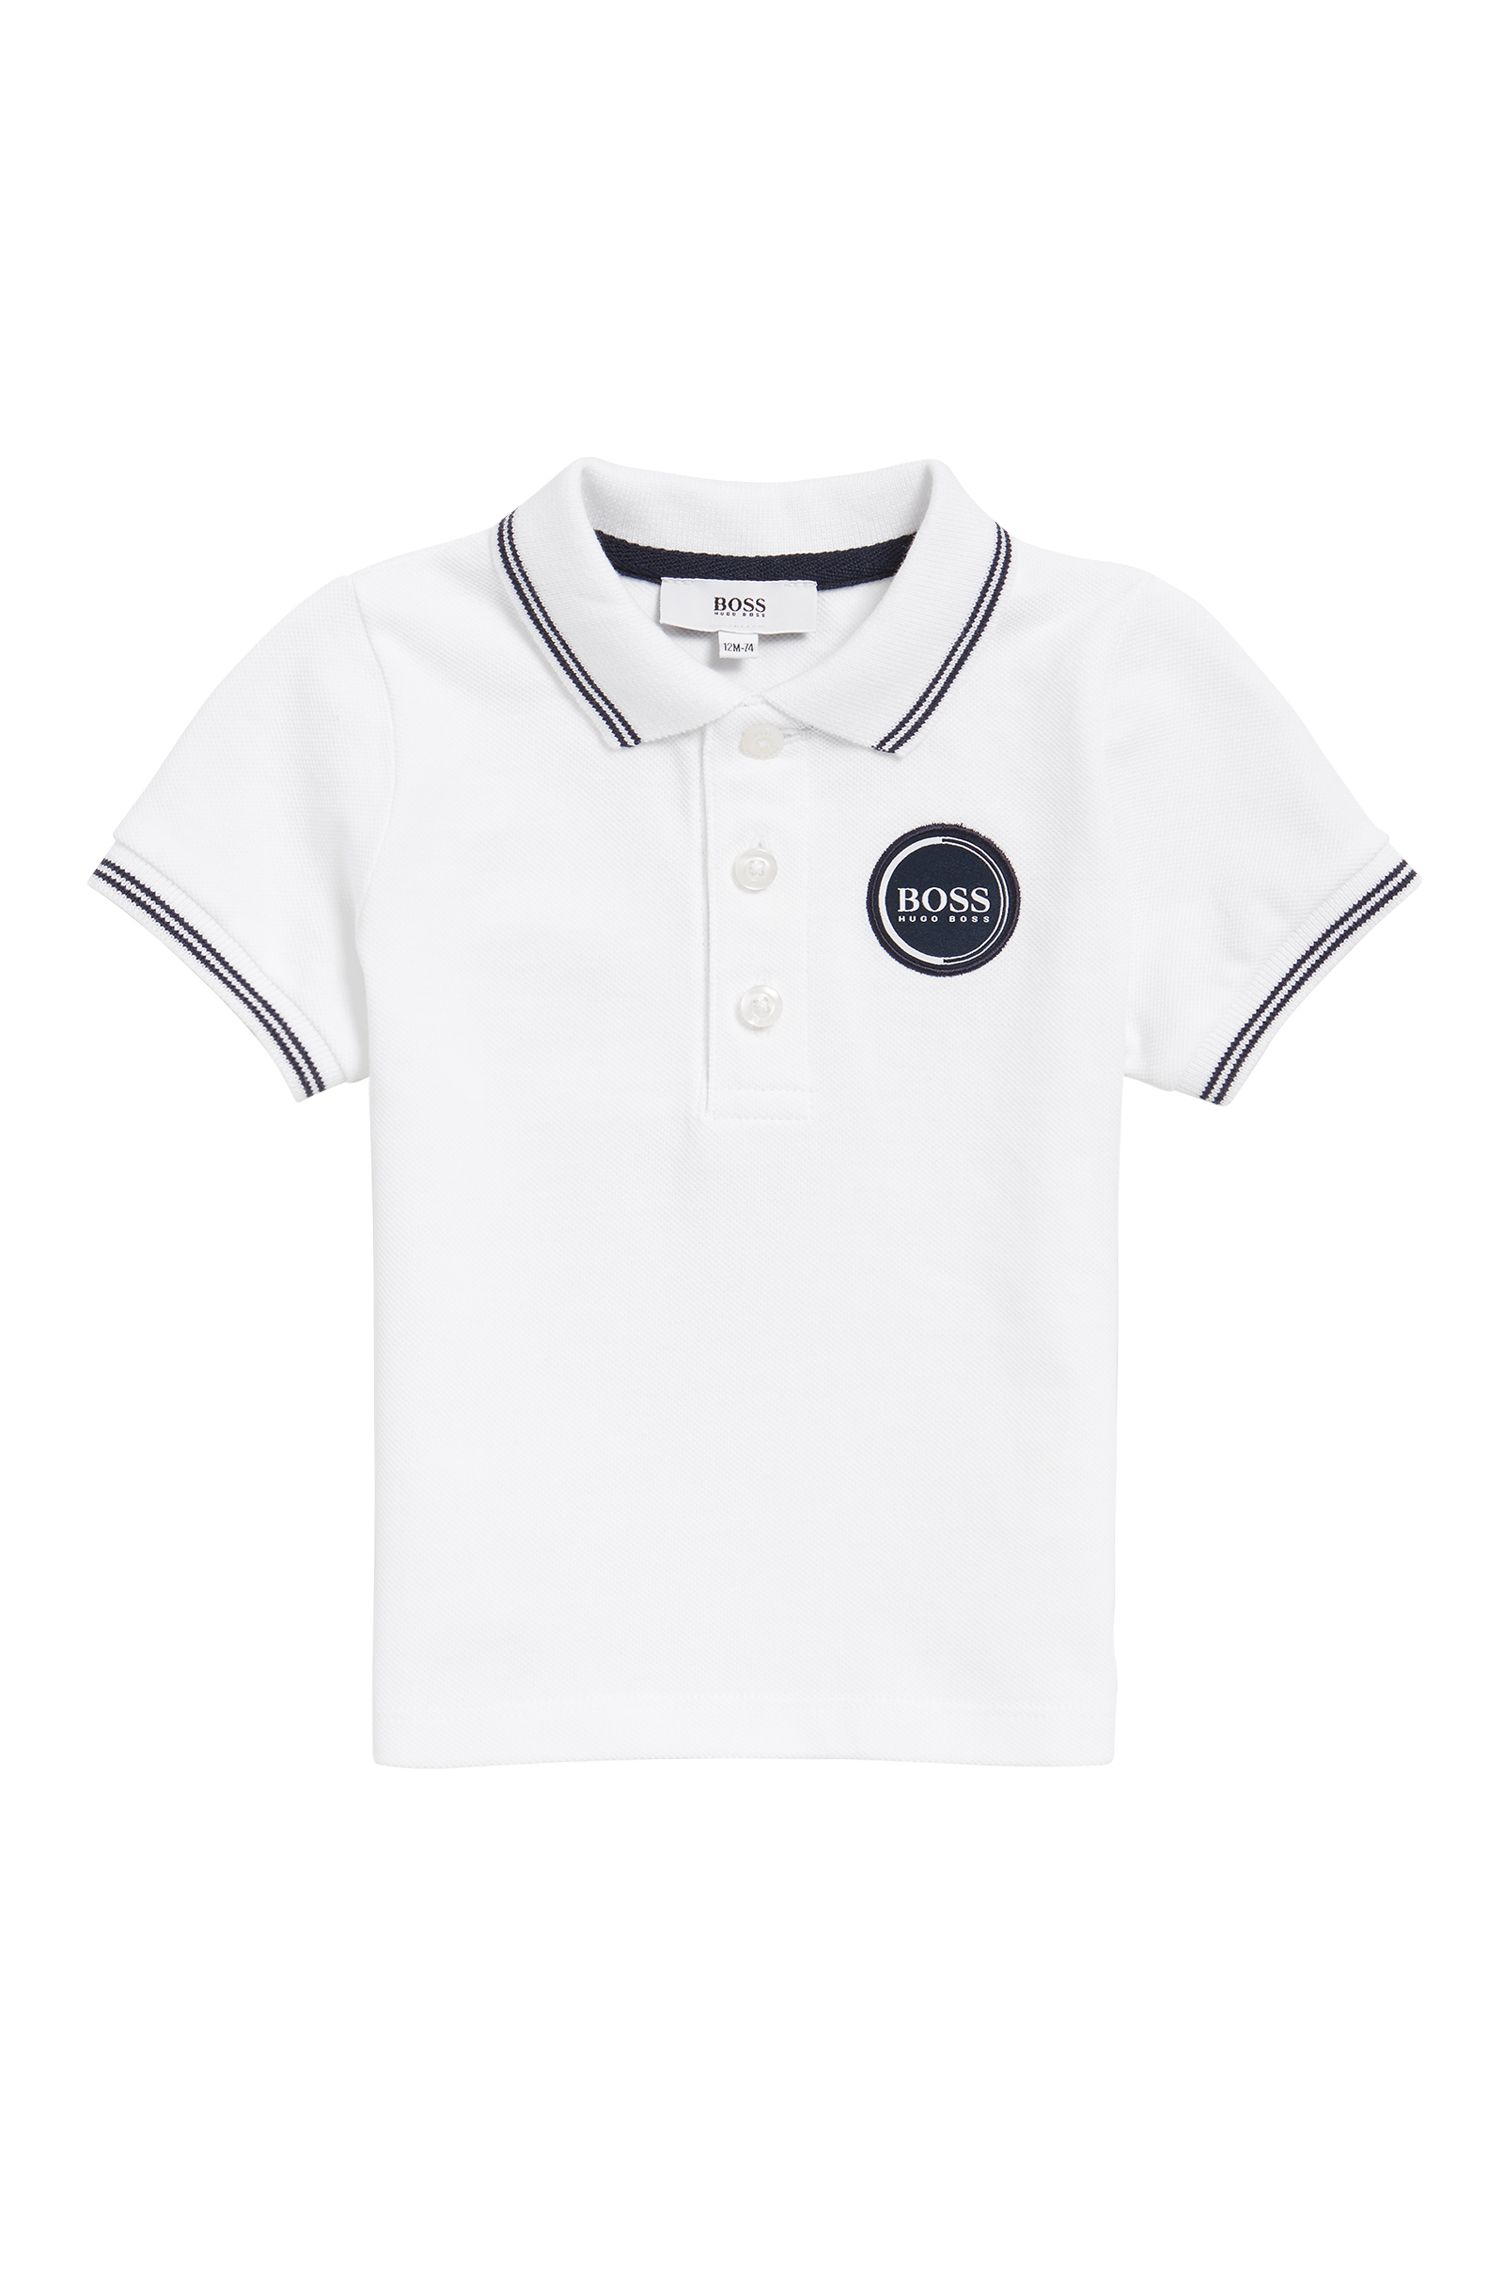 Kids' polo shirt in cotton pique with logo badge